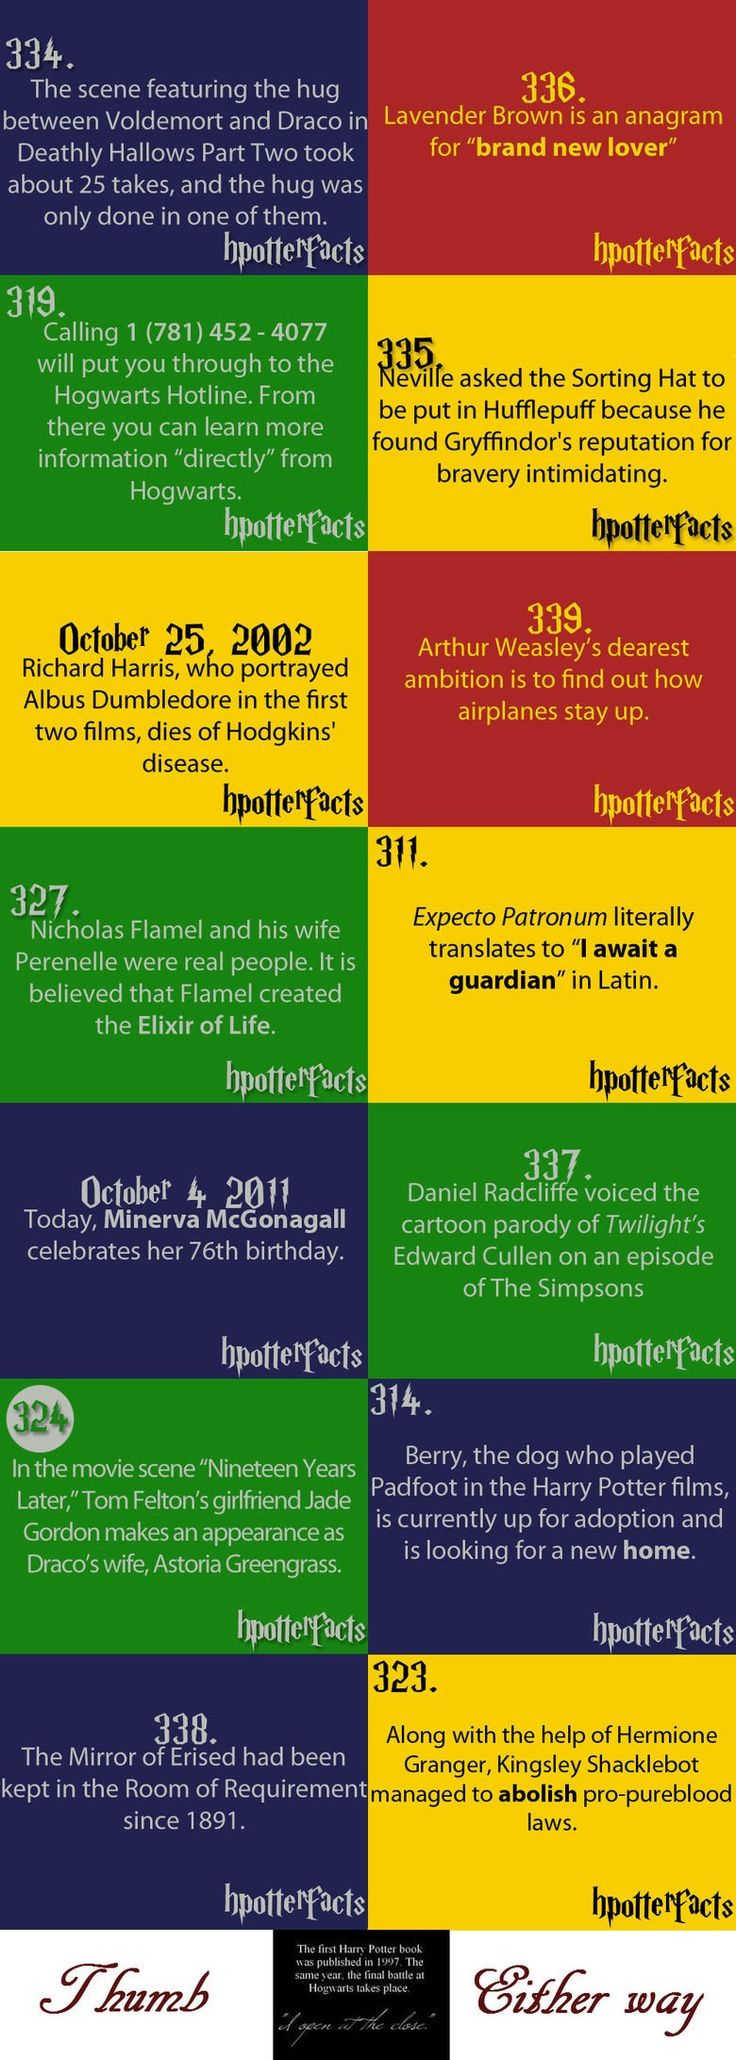 Harry Potter facts the dog got adopted